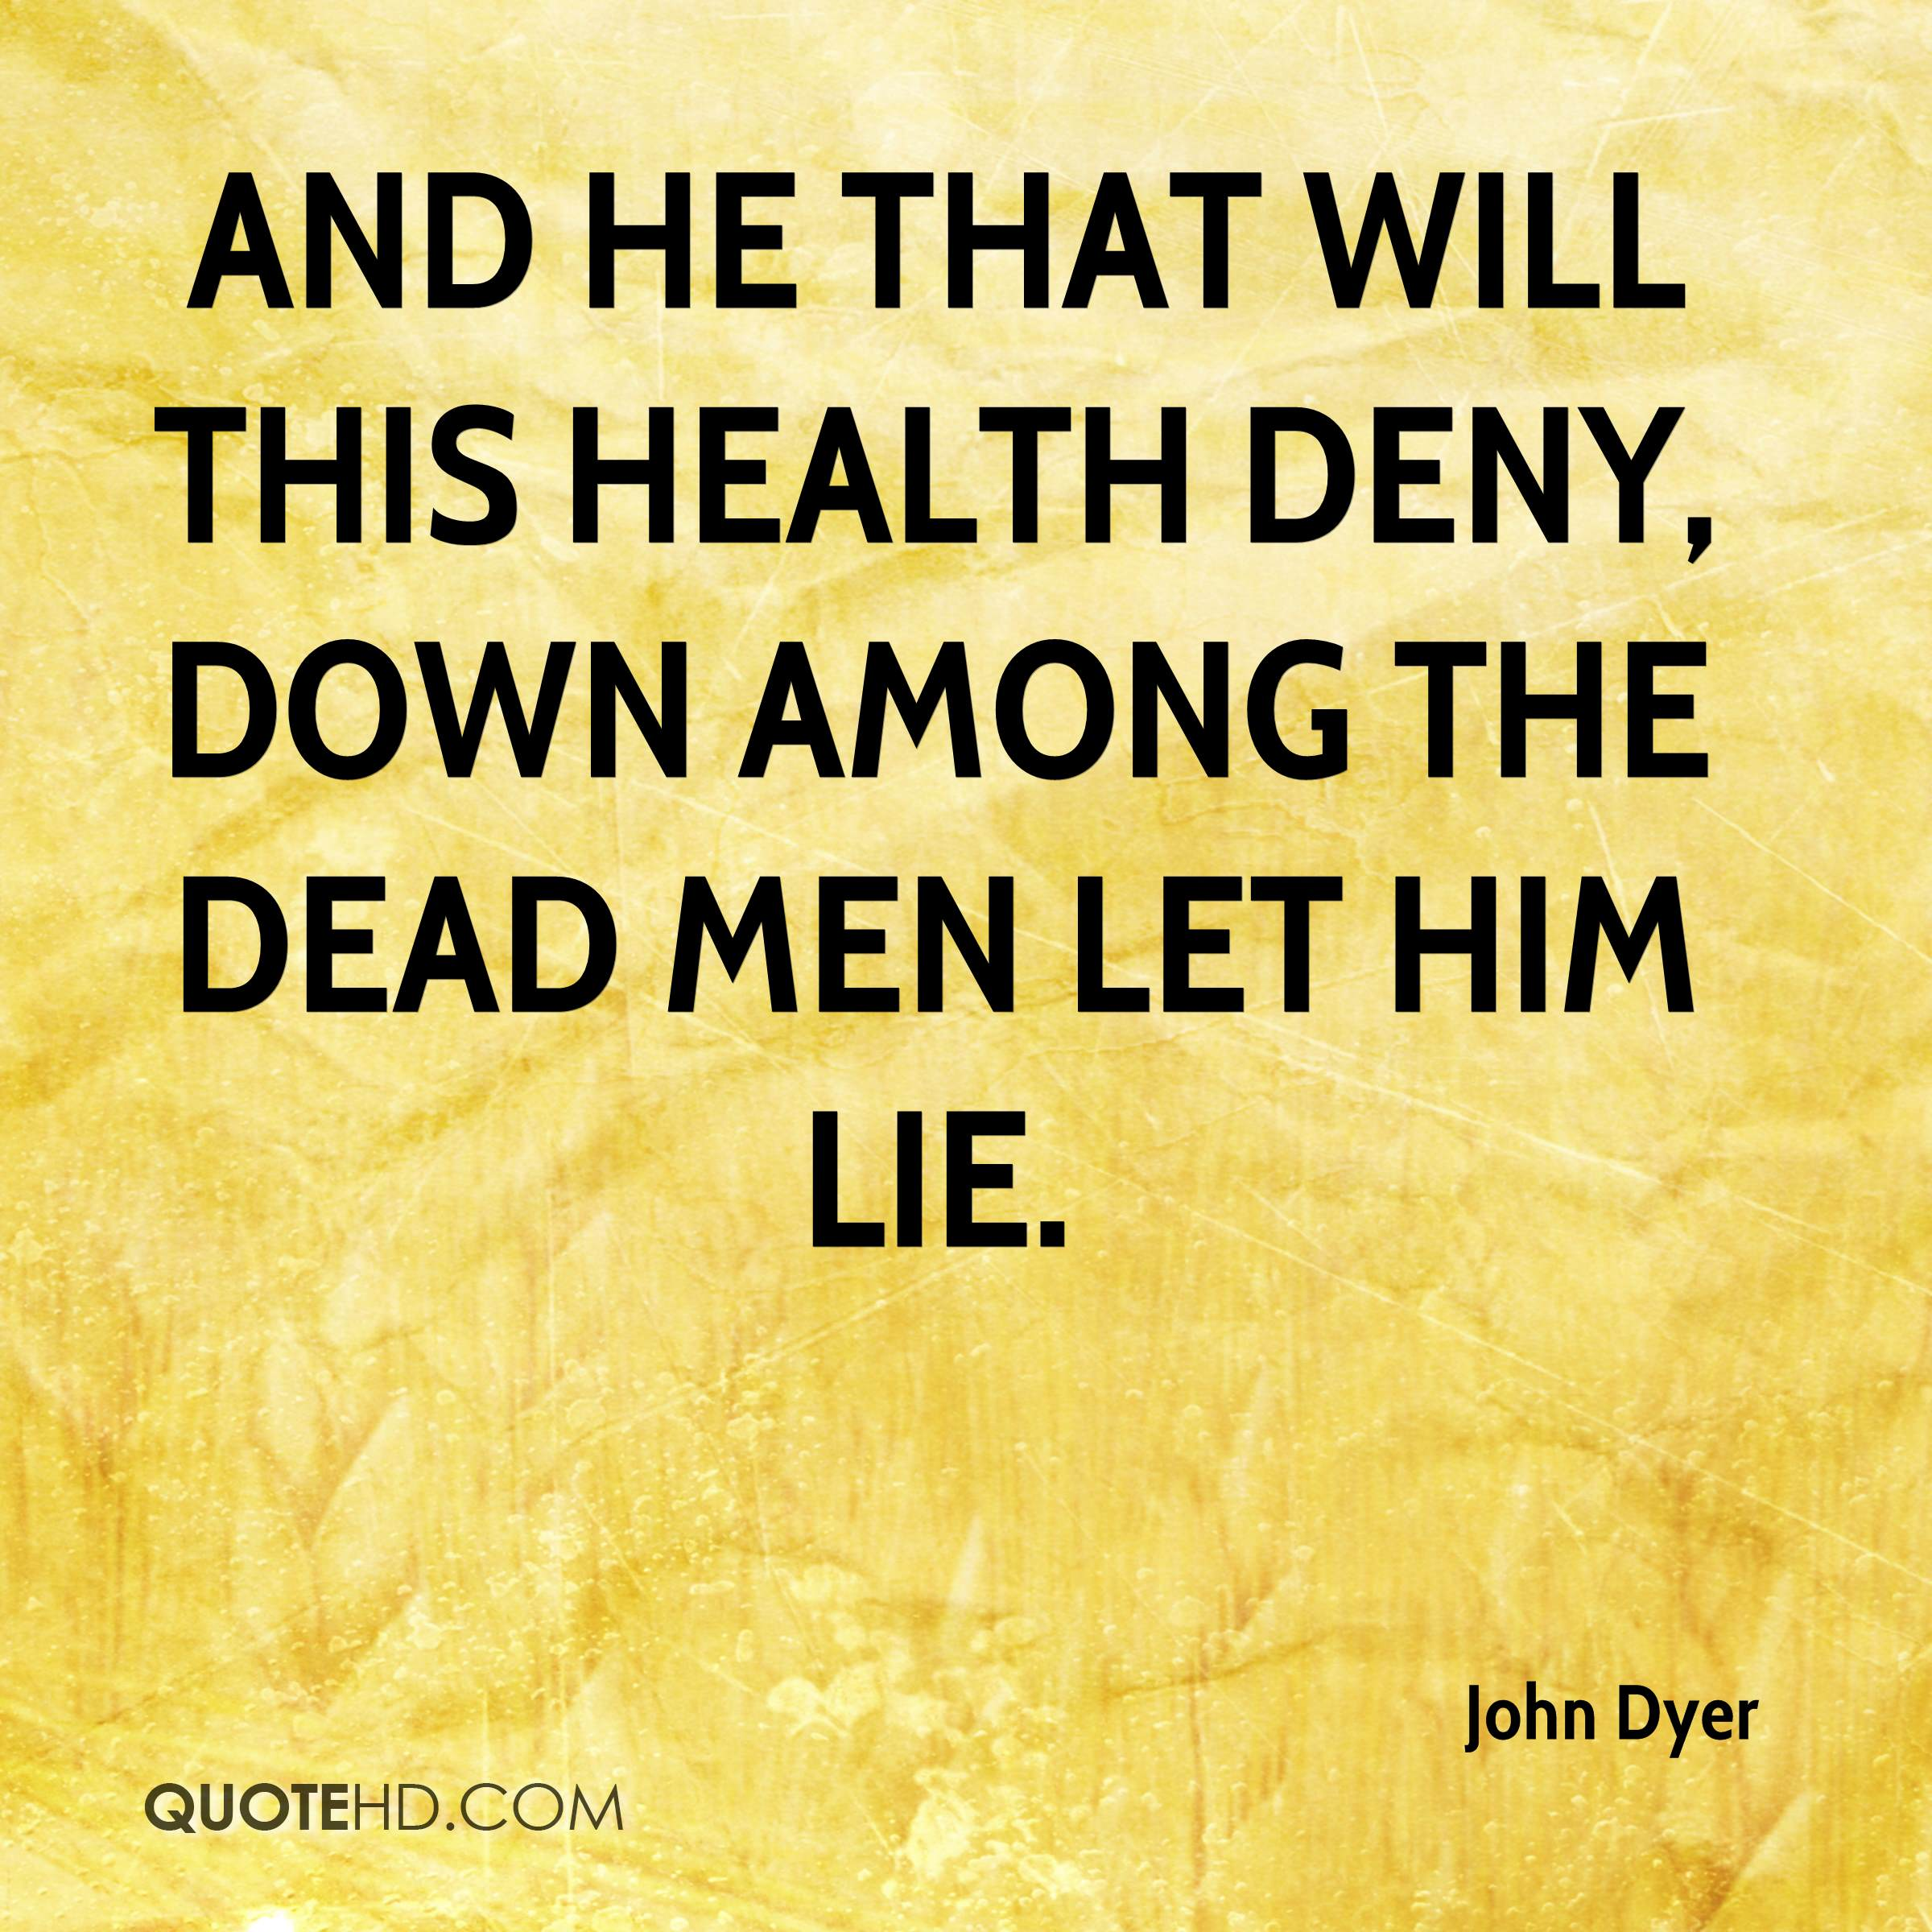 And he that will this health deny, down among the dead men let him lie.